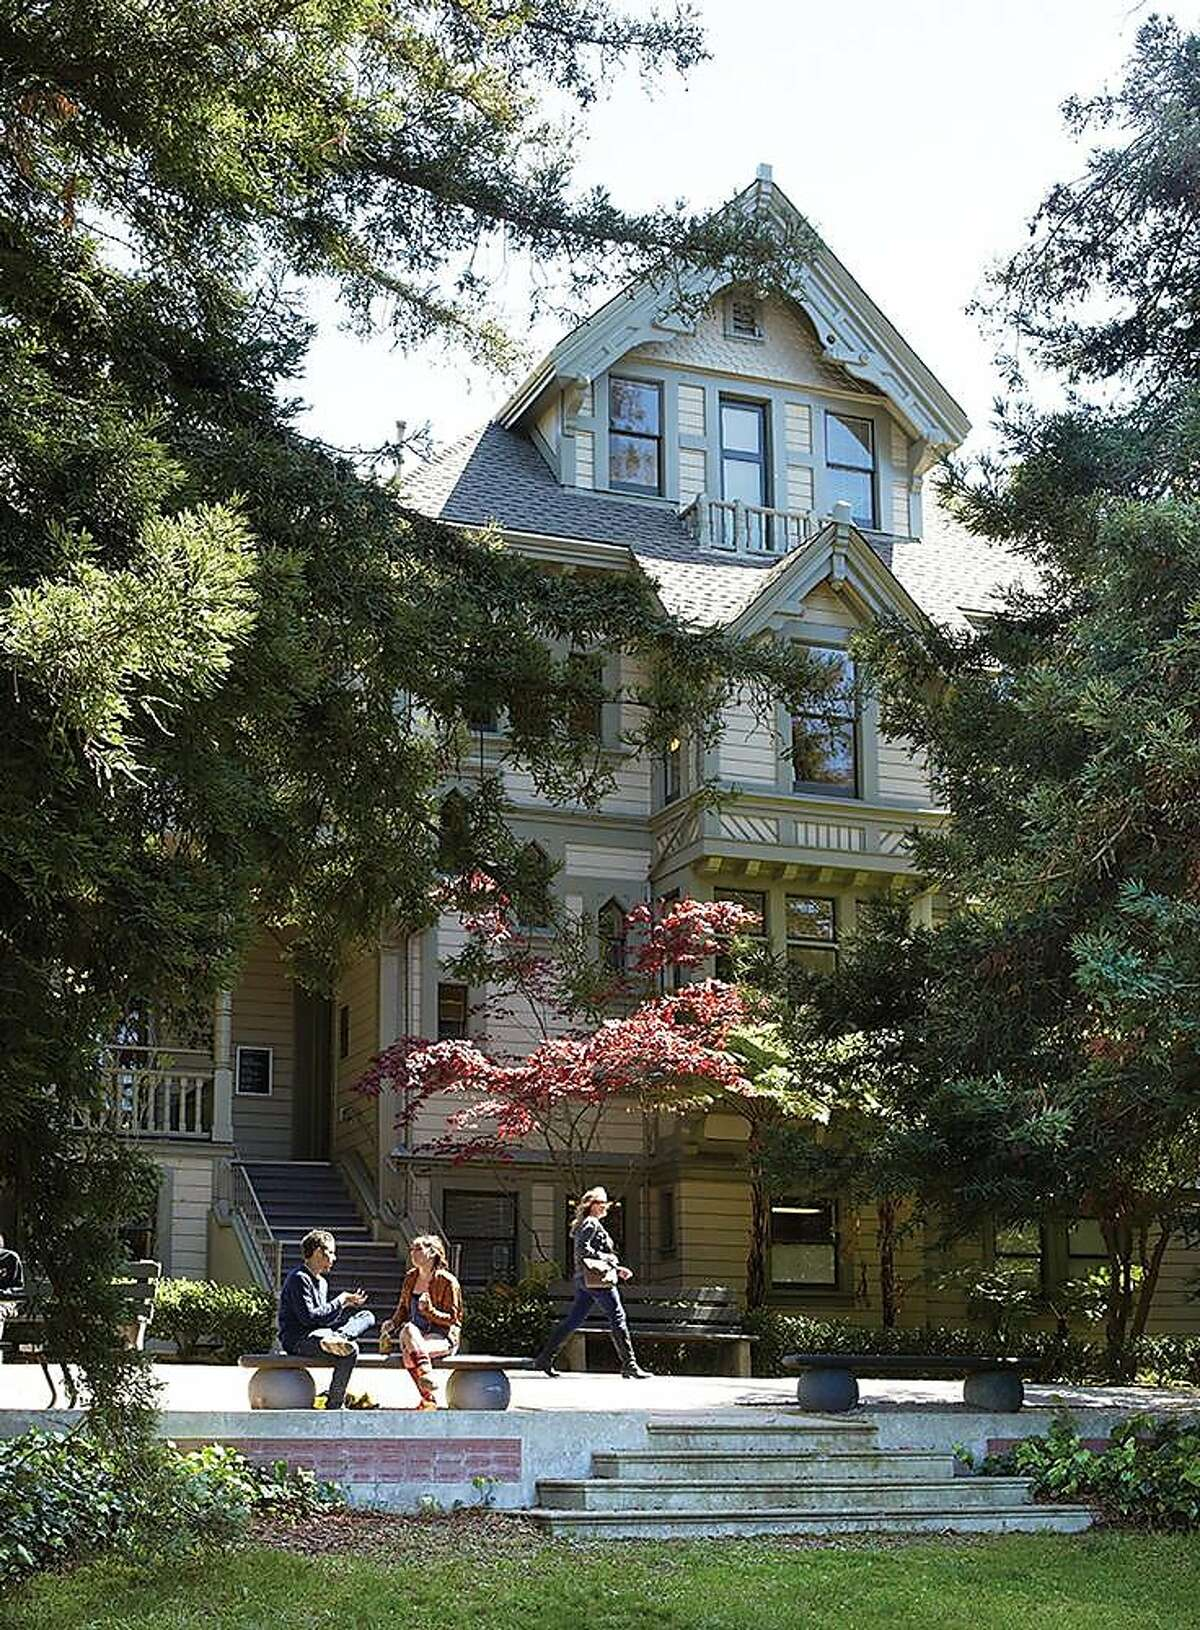 The Treadwell Mansion (now called Macky Hall), on the Oakland campus of the California College of the Arts, is listed on the National Register of Historic Places.